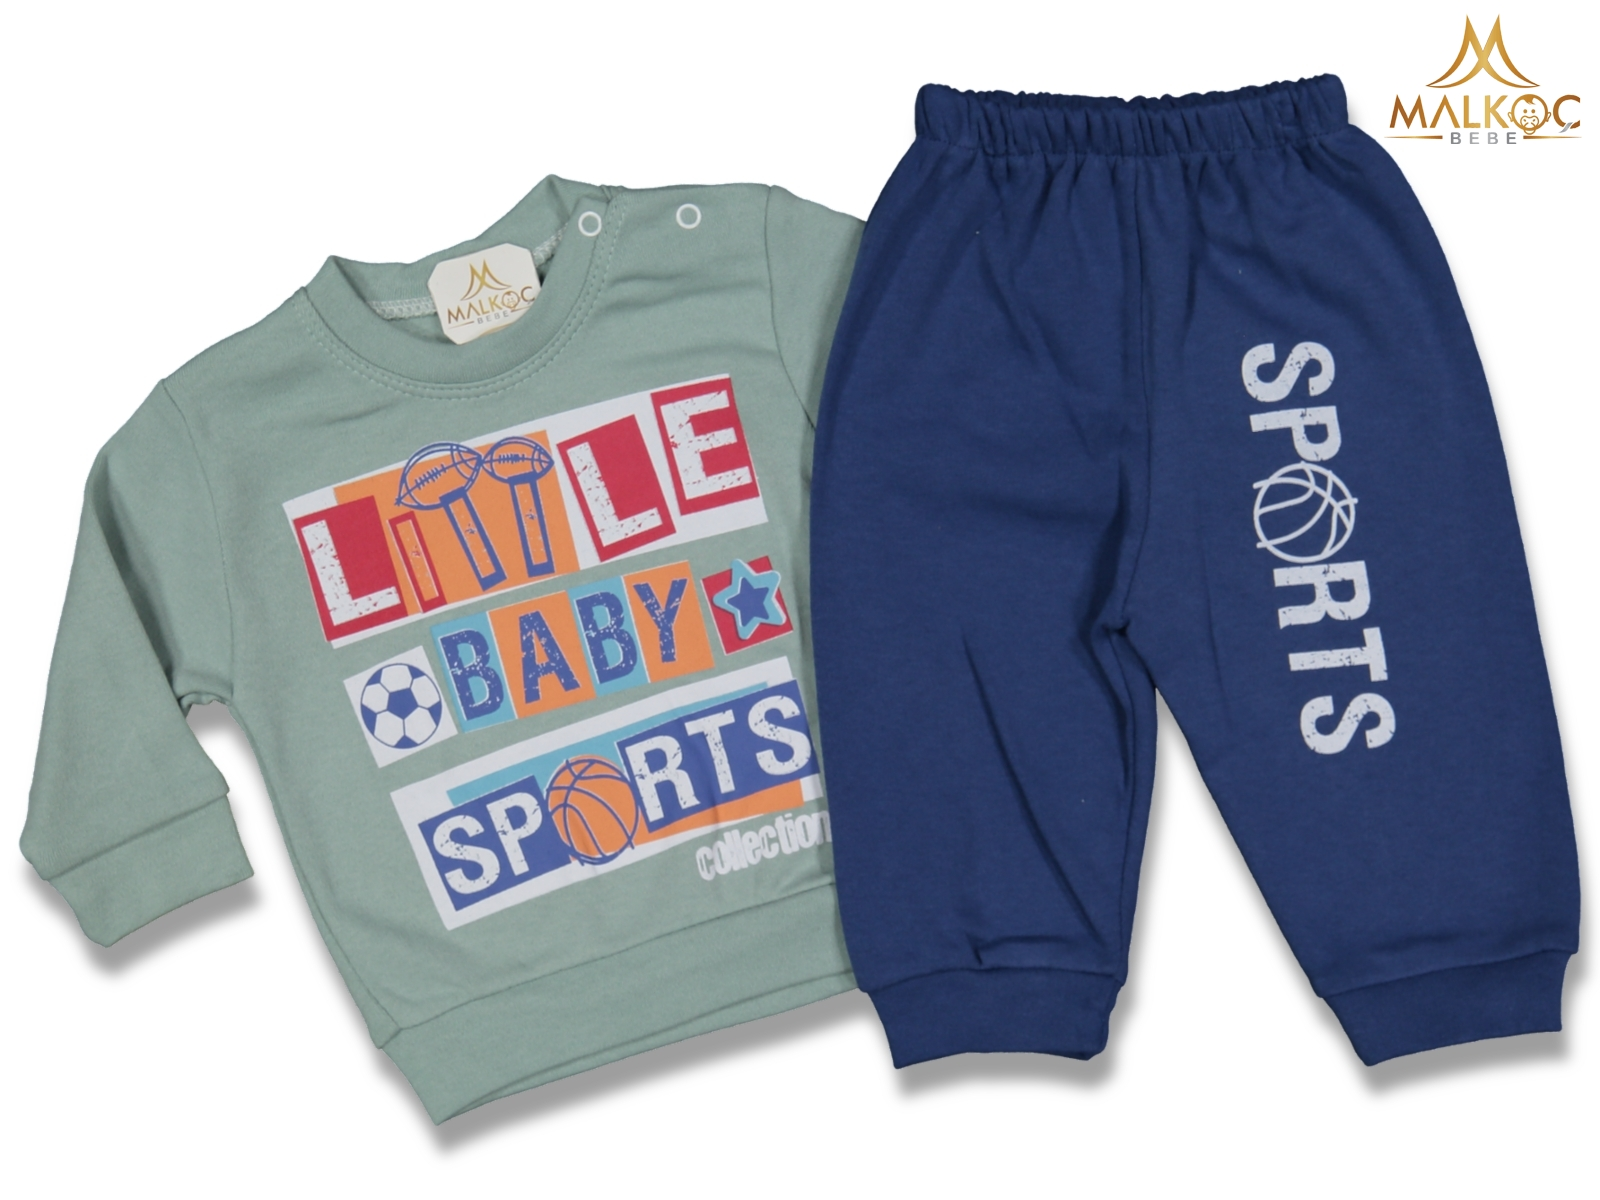 ERKEK 9/18 AY LİTTLE BABY SPORTS 2 Lİ TAK